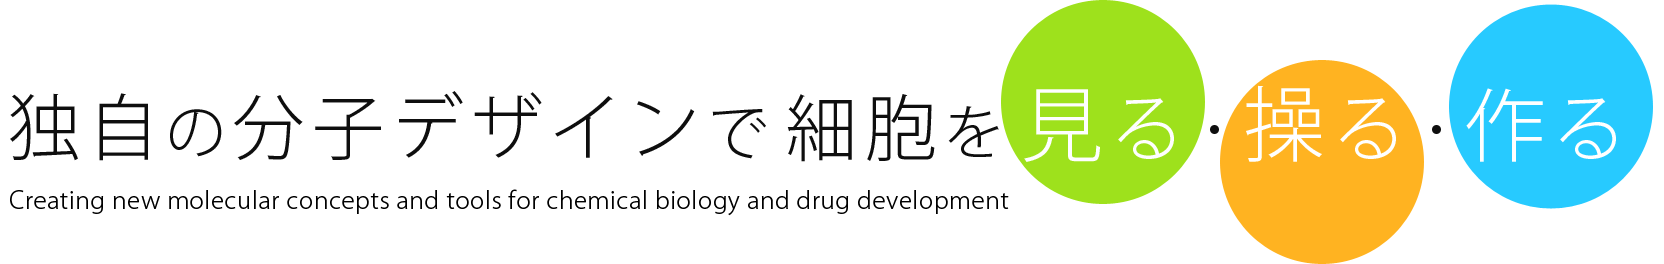 独自の分子デザインで細胞を見る・操る・作る / Creating new molecular concepts and tools for chemical biology and drug development